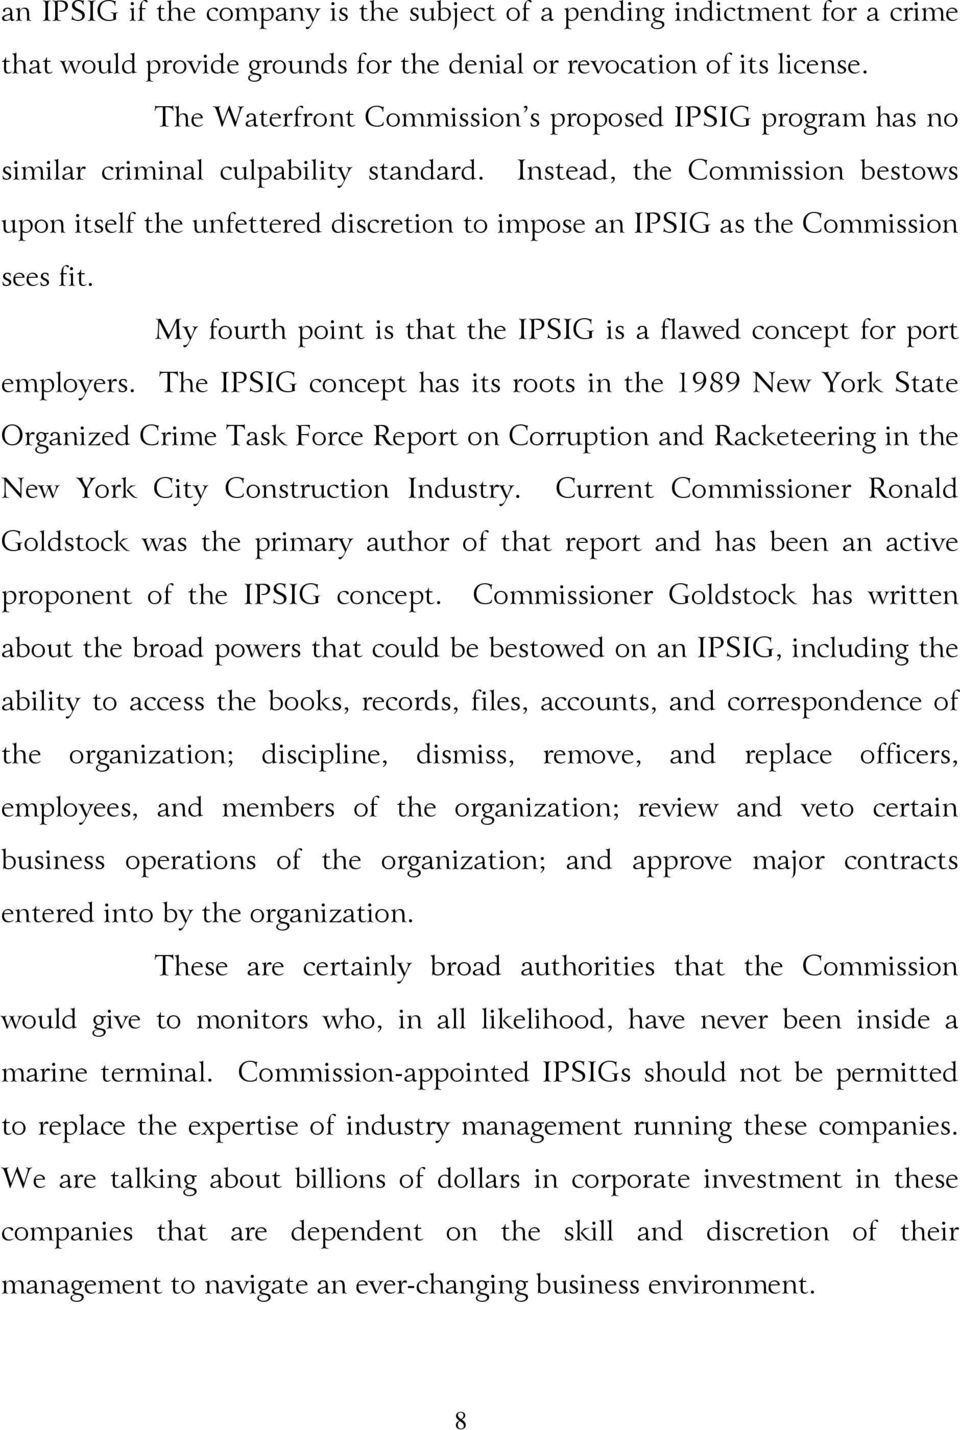 Instead, the Commission bestows upon itself the unfettered discretion to impose an IPSIG as the Commission sees fit. My fourth point is that the IPSIG is a flawed concept for port employers.